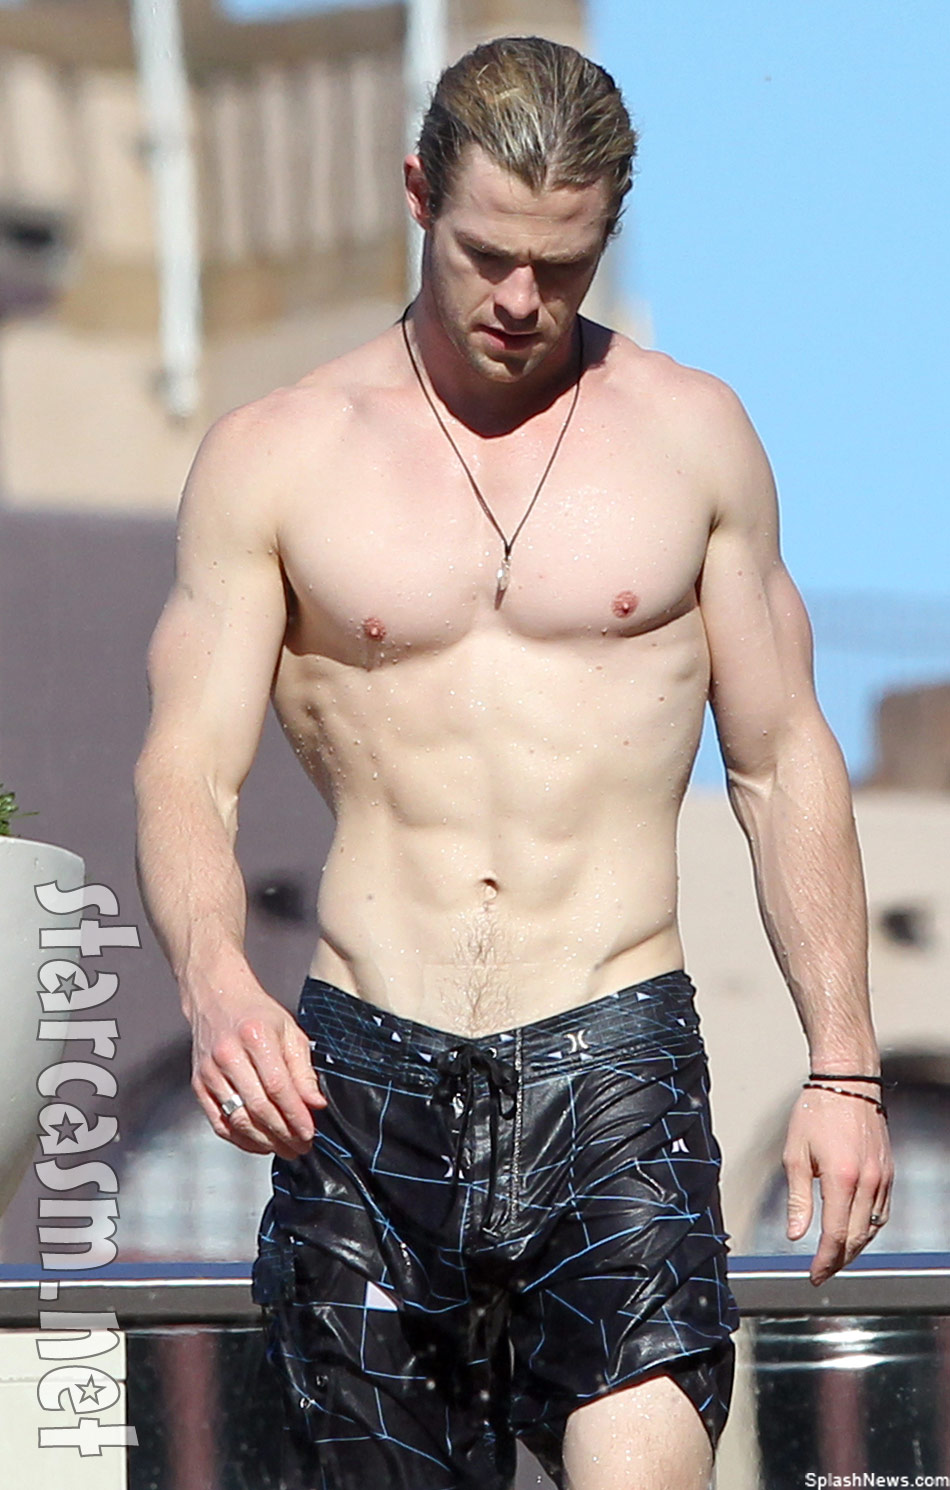 Chris Hemsworth as the real life Thor shirtless Down Under